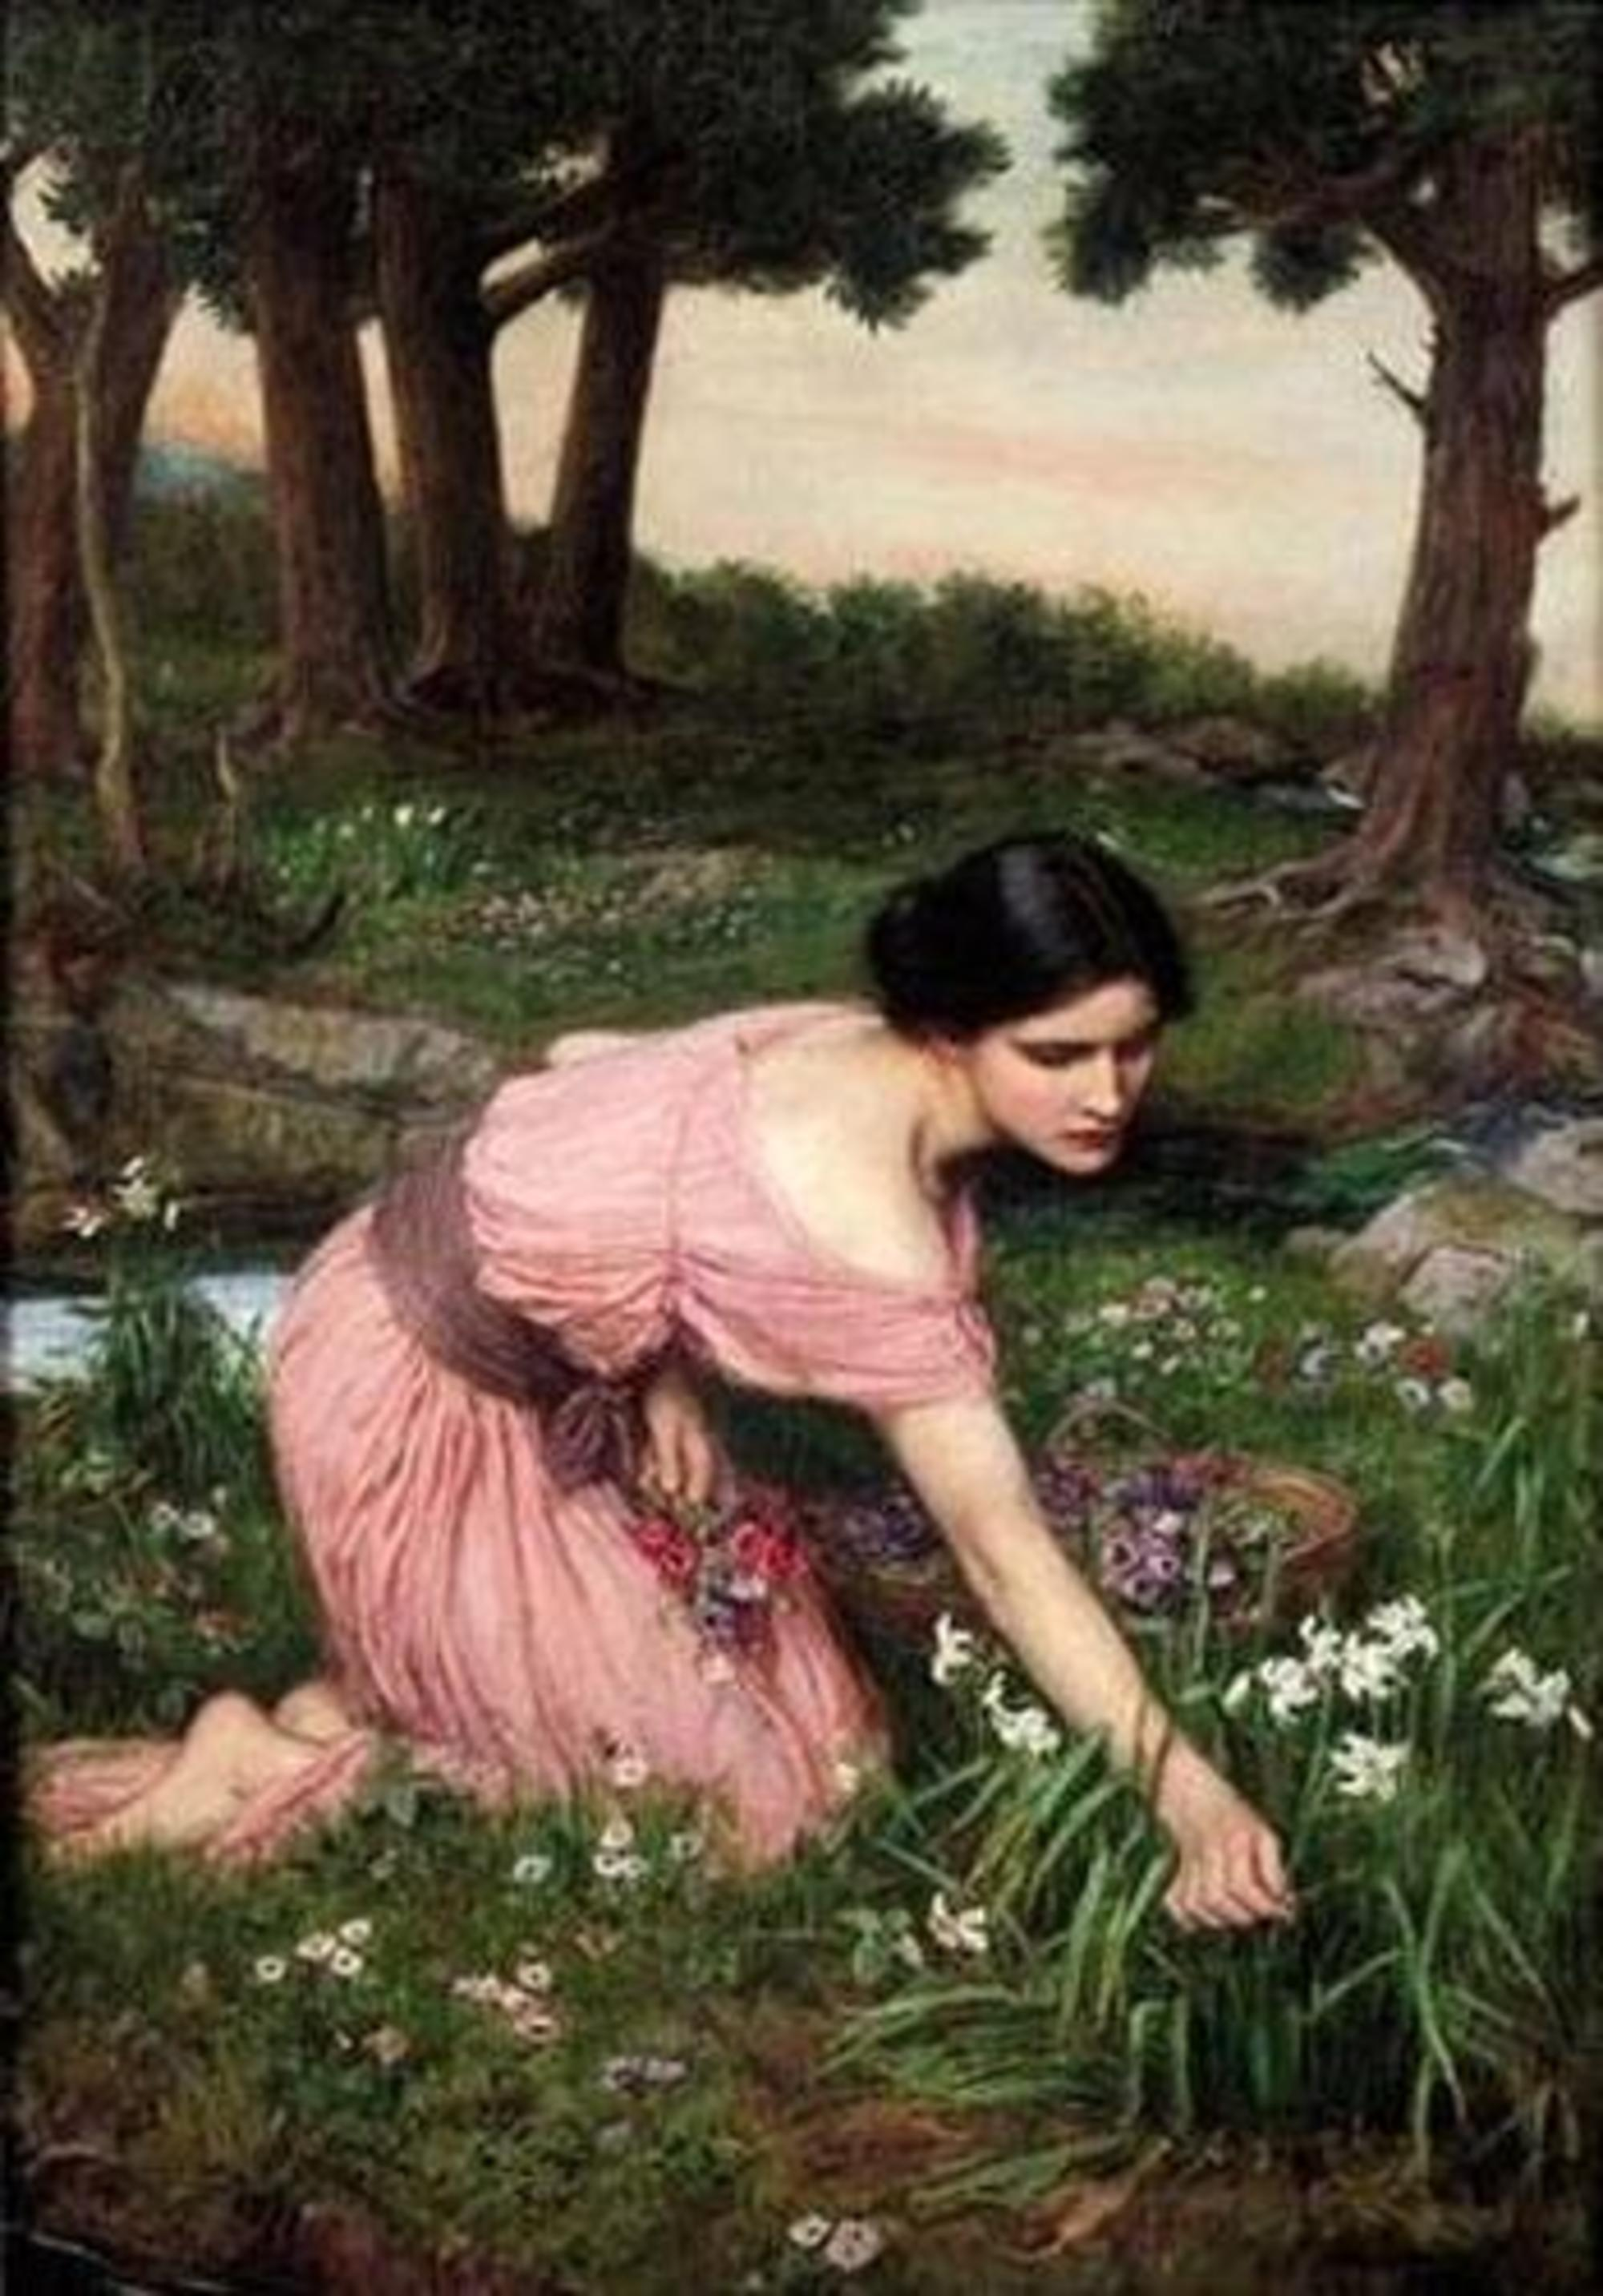 John_William_Waterhouse_-_Spring_Spreads_One_Green_Lap_of_Flowers.jpg